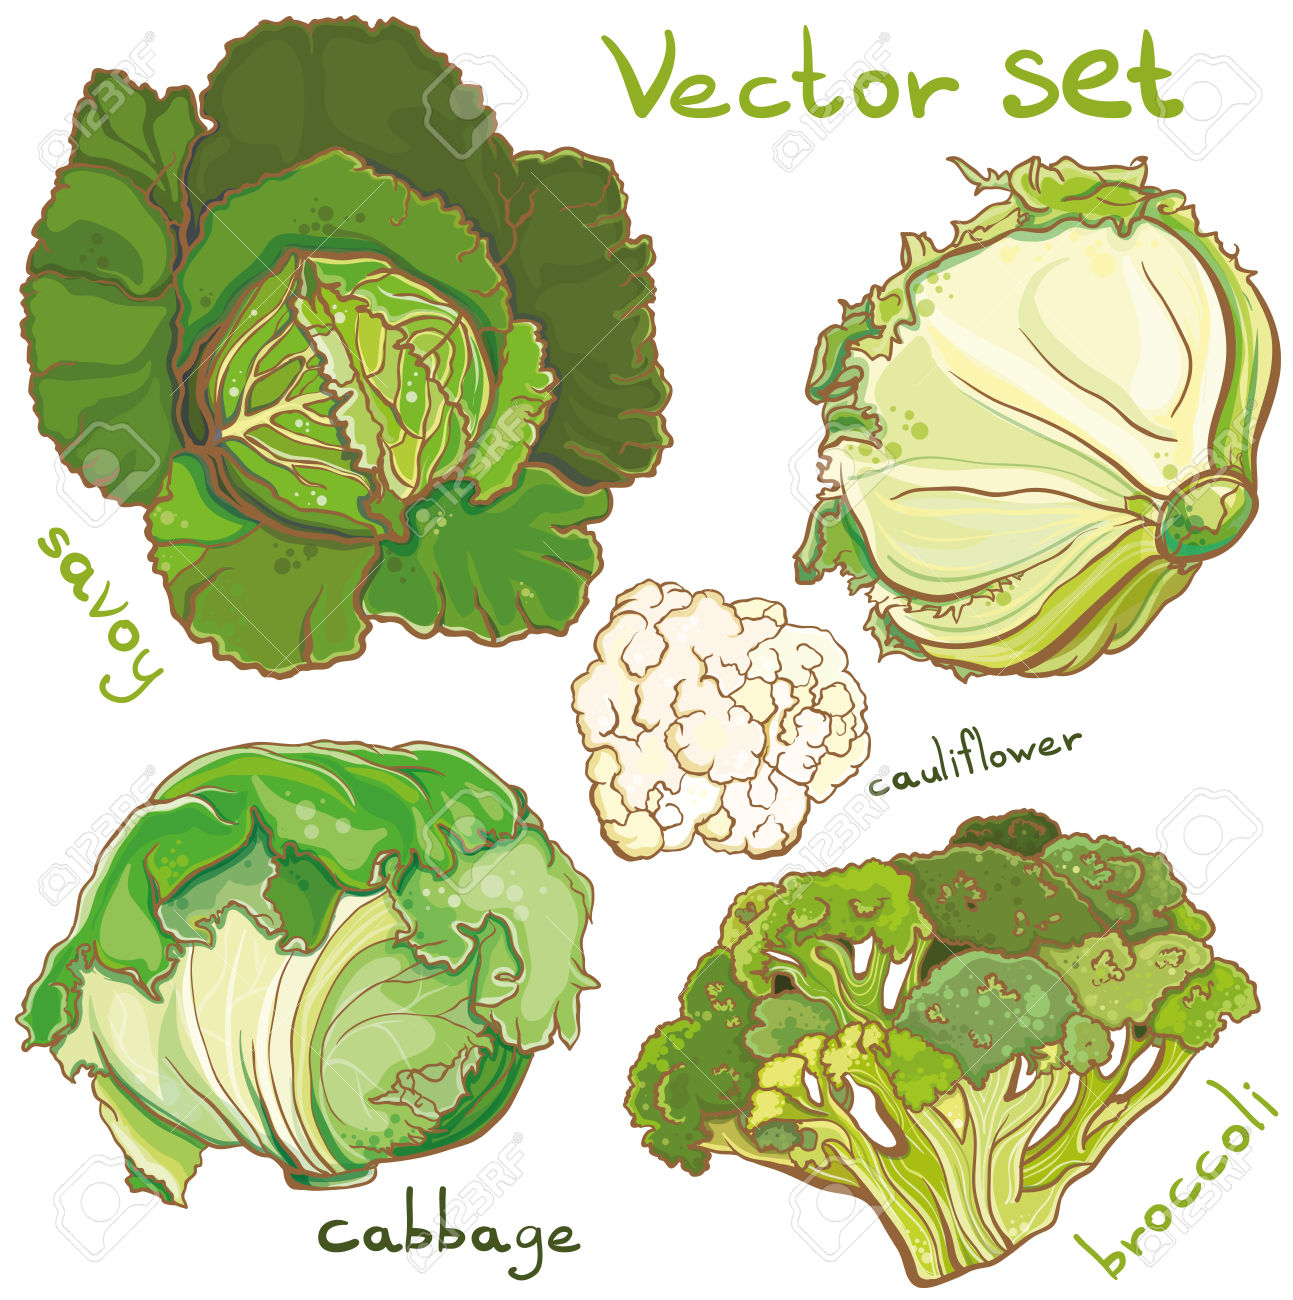 76 Savoy Cabbage Cliparts, Stock Vector And Royalty Free Savoy.